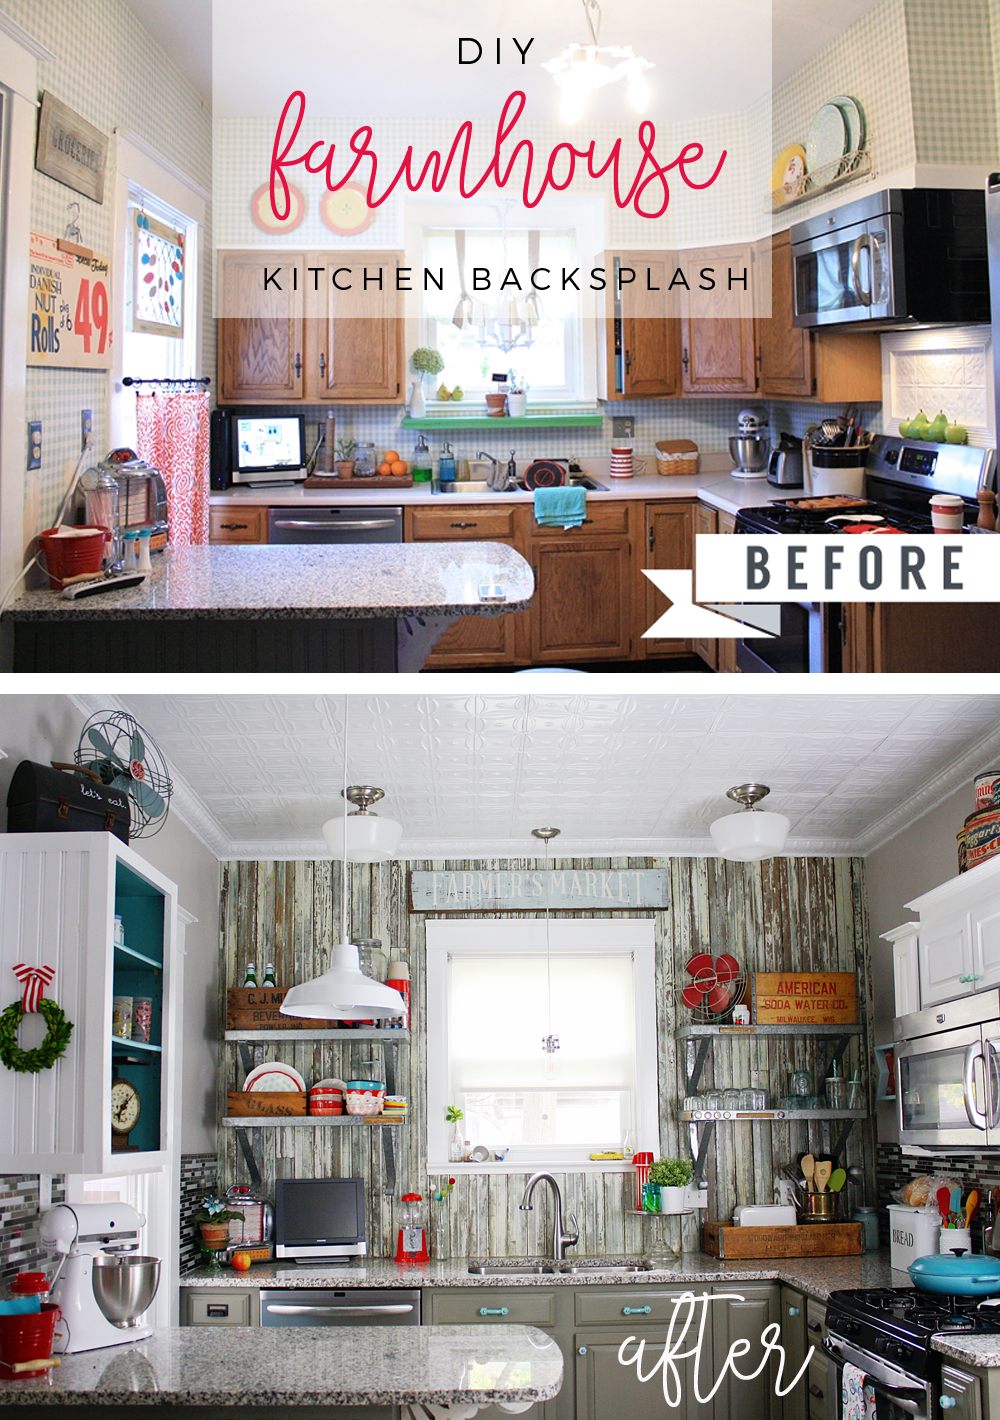 DIY Farmhouse Kitchen Backsplash